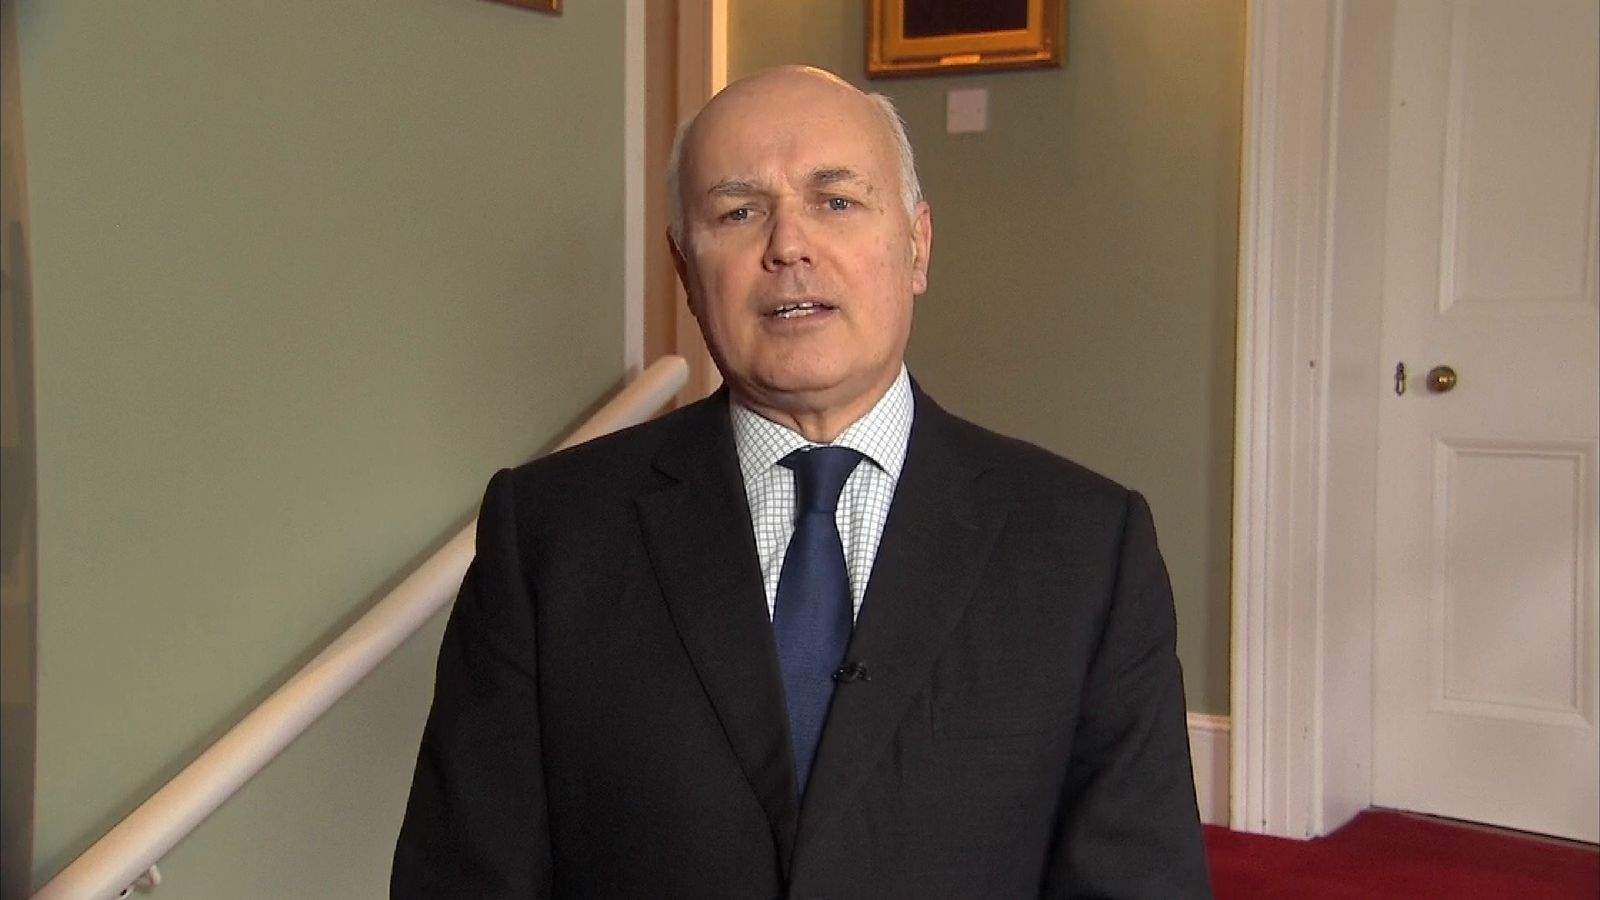 Iain Duncan Smith screen grab